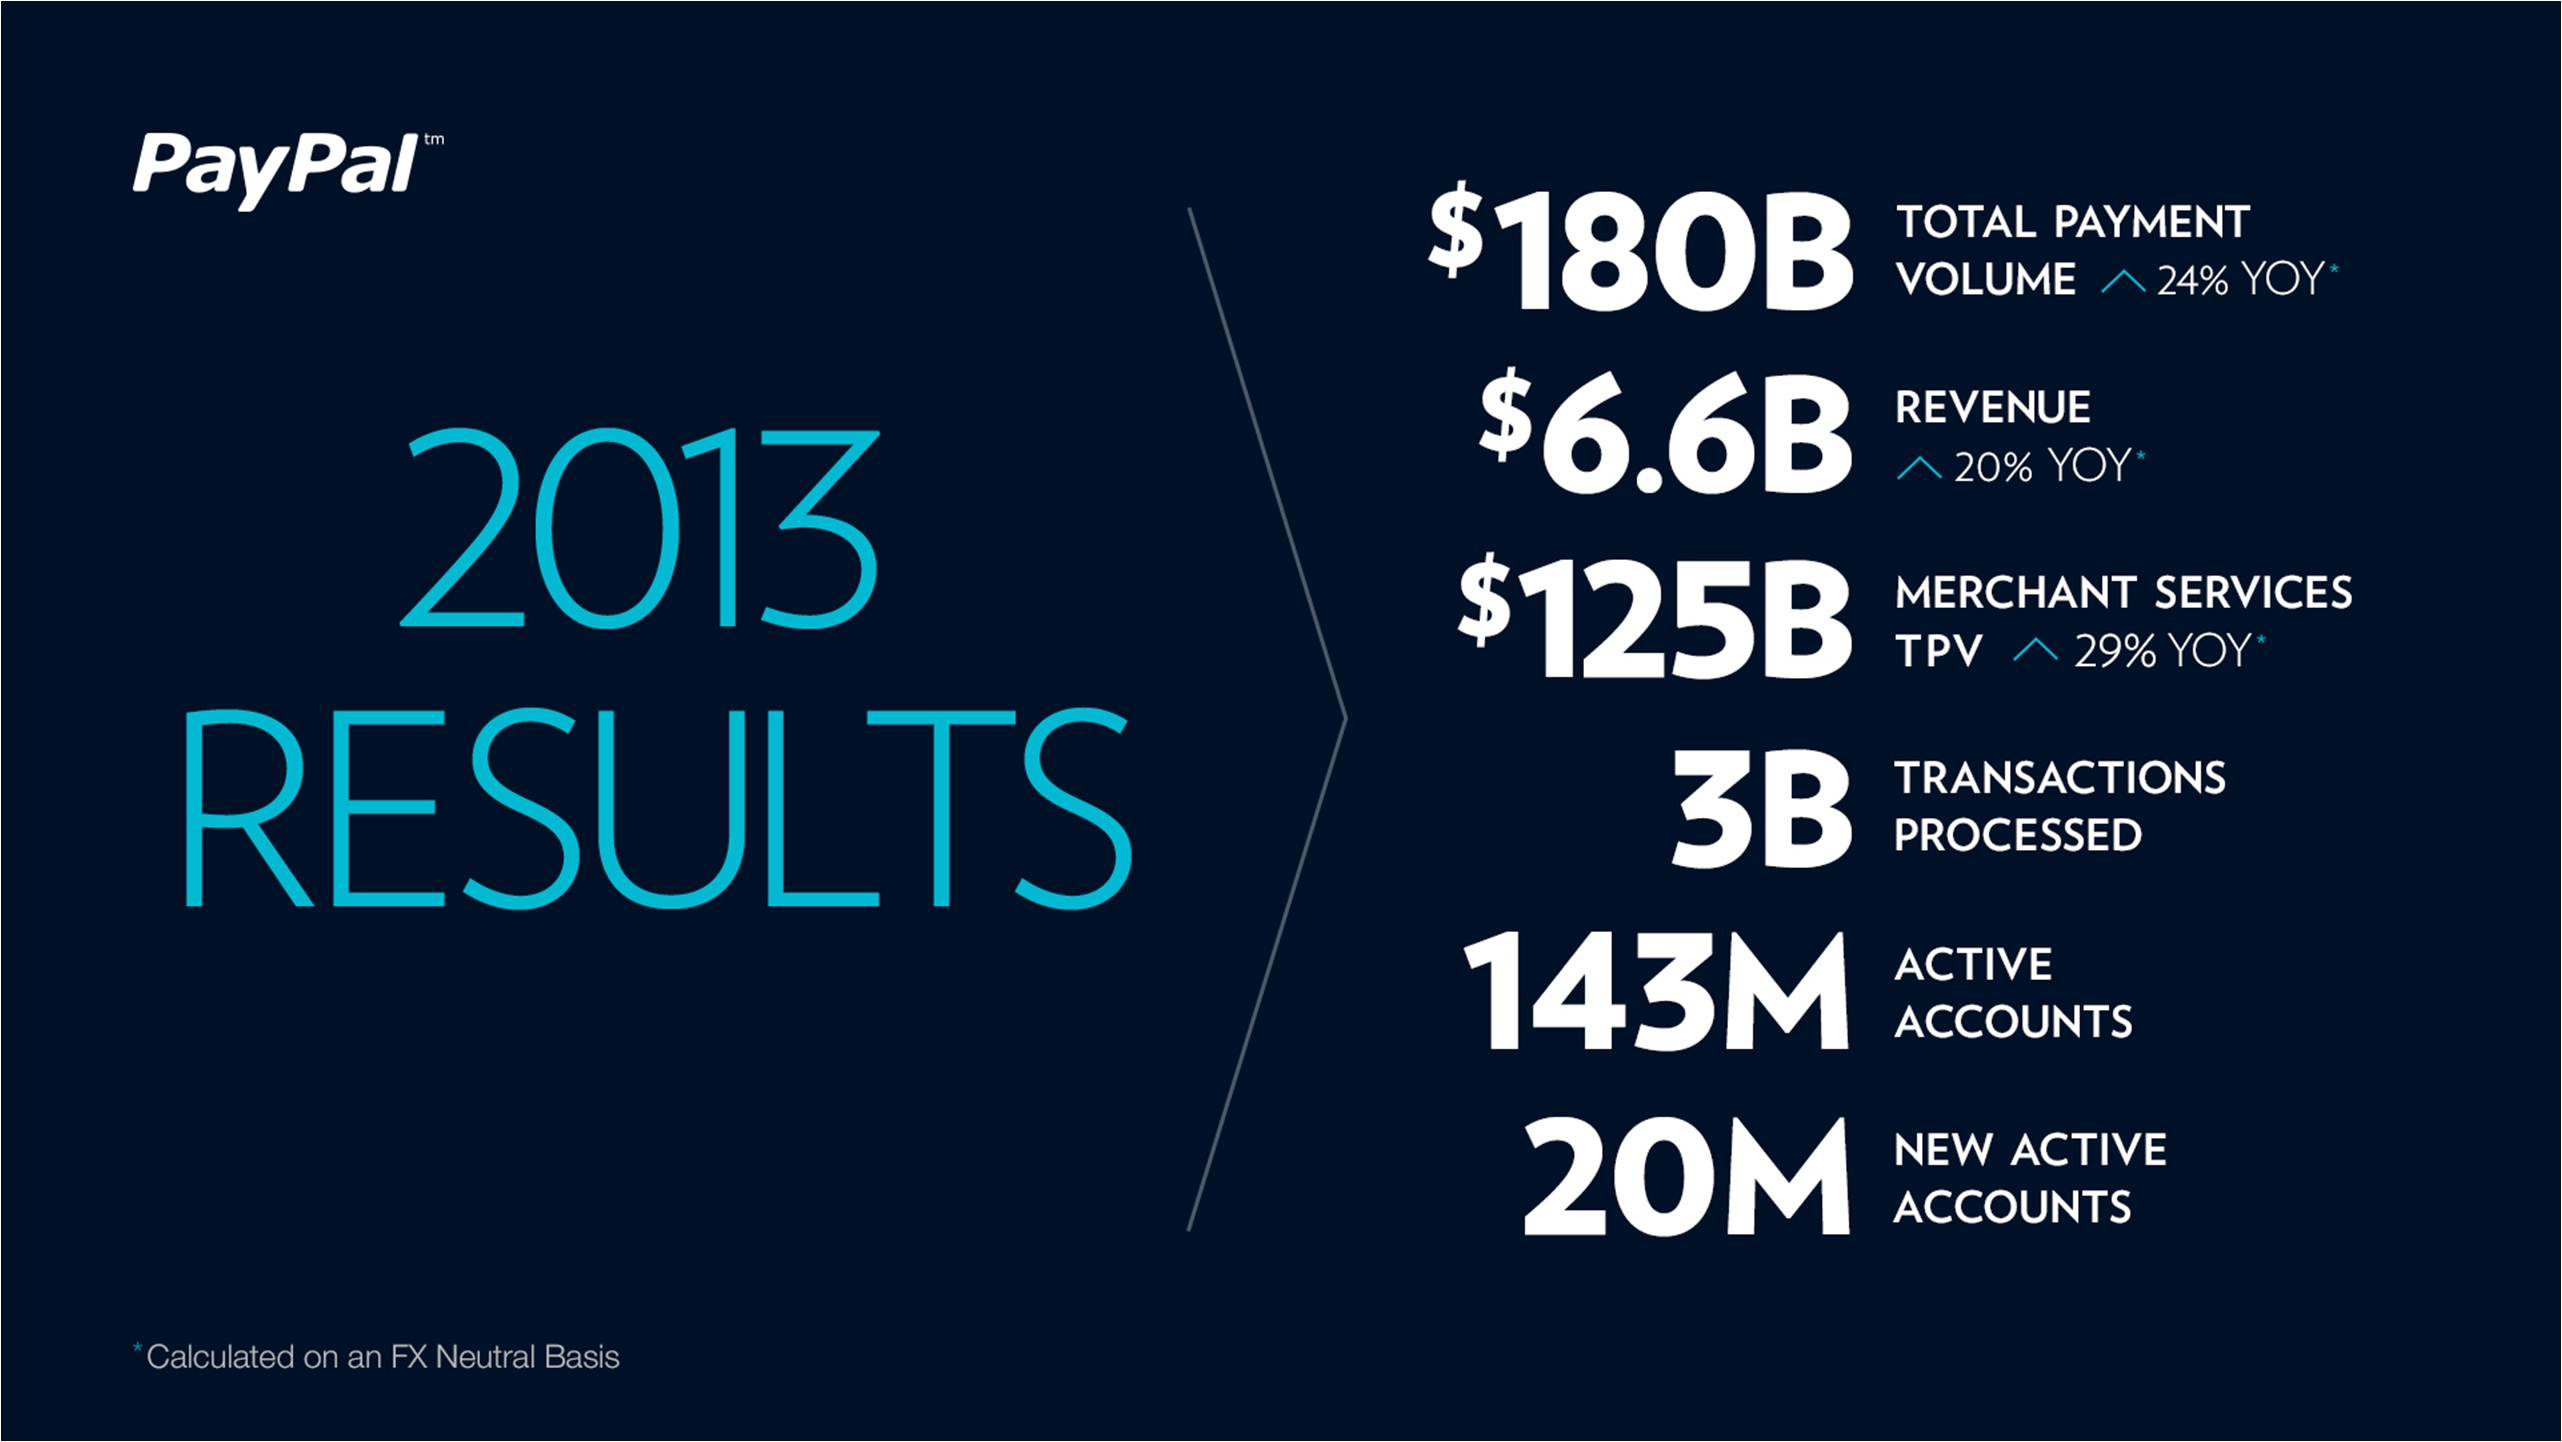 PayPal in 2013: more than half revenues from international